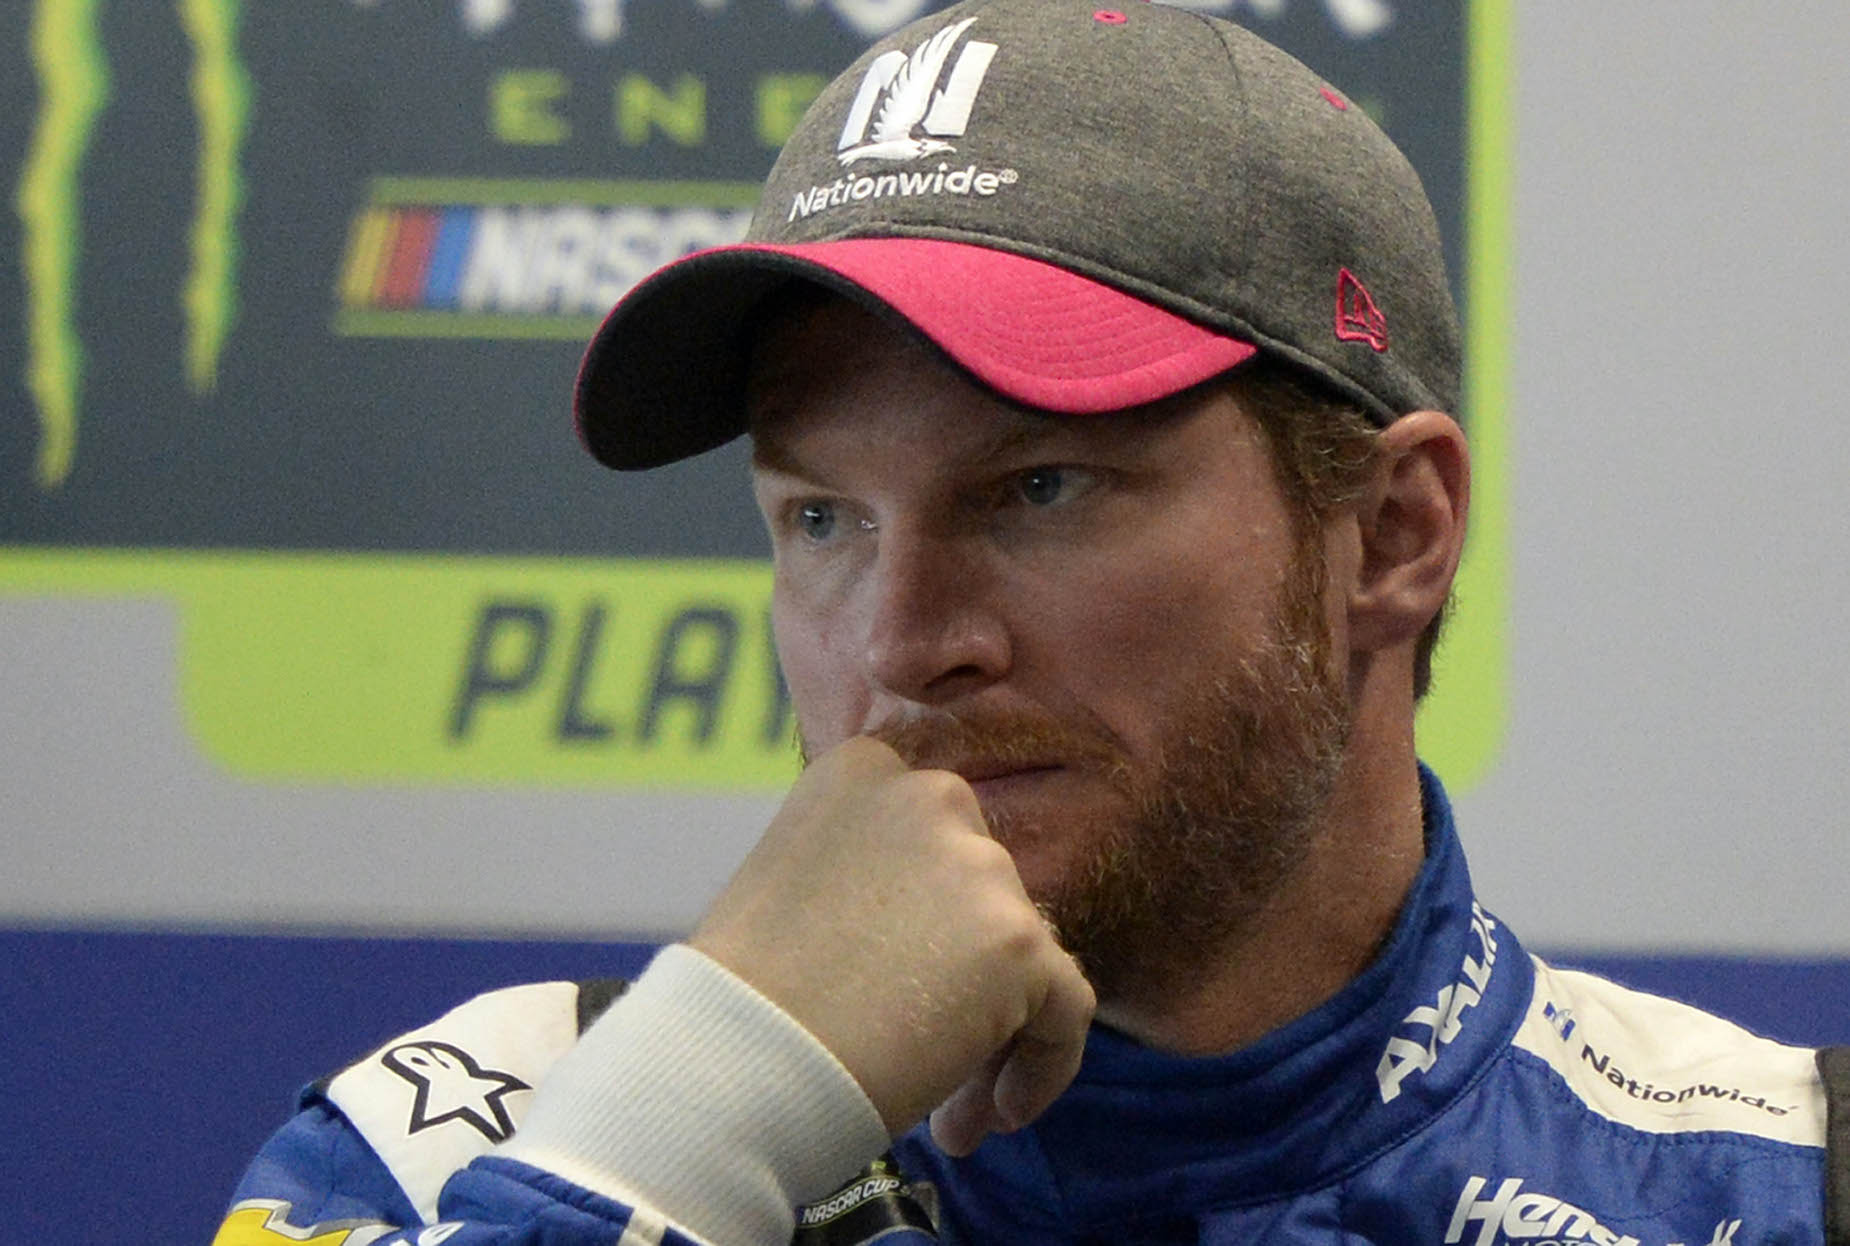 Dale Earnhardt Jr. during his media availability in 2017.